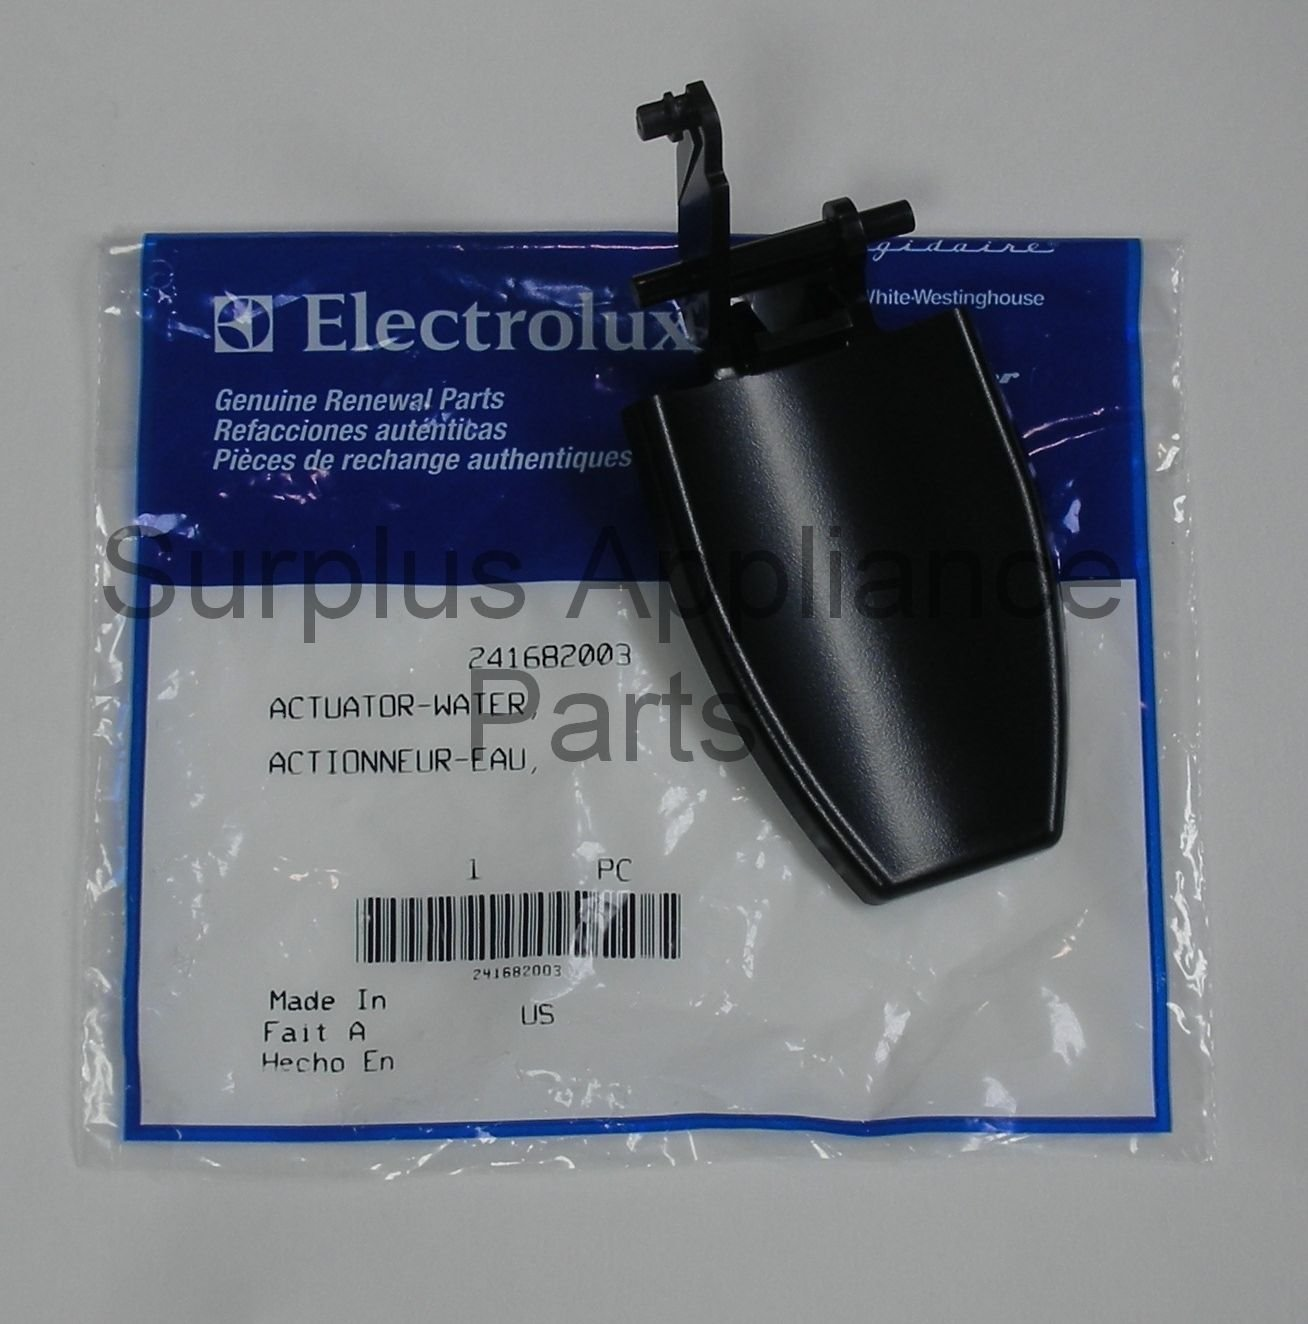 (Ship from USA) Frigidaire Refrigerator Black Water Dispenser Actuator 241682003 NEW OEM /ITEM NO#8Y-IFW81854202080